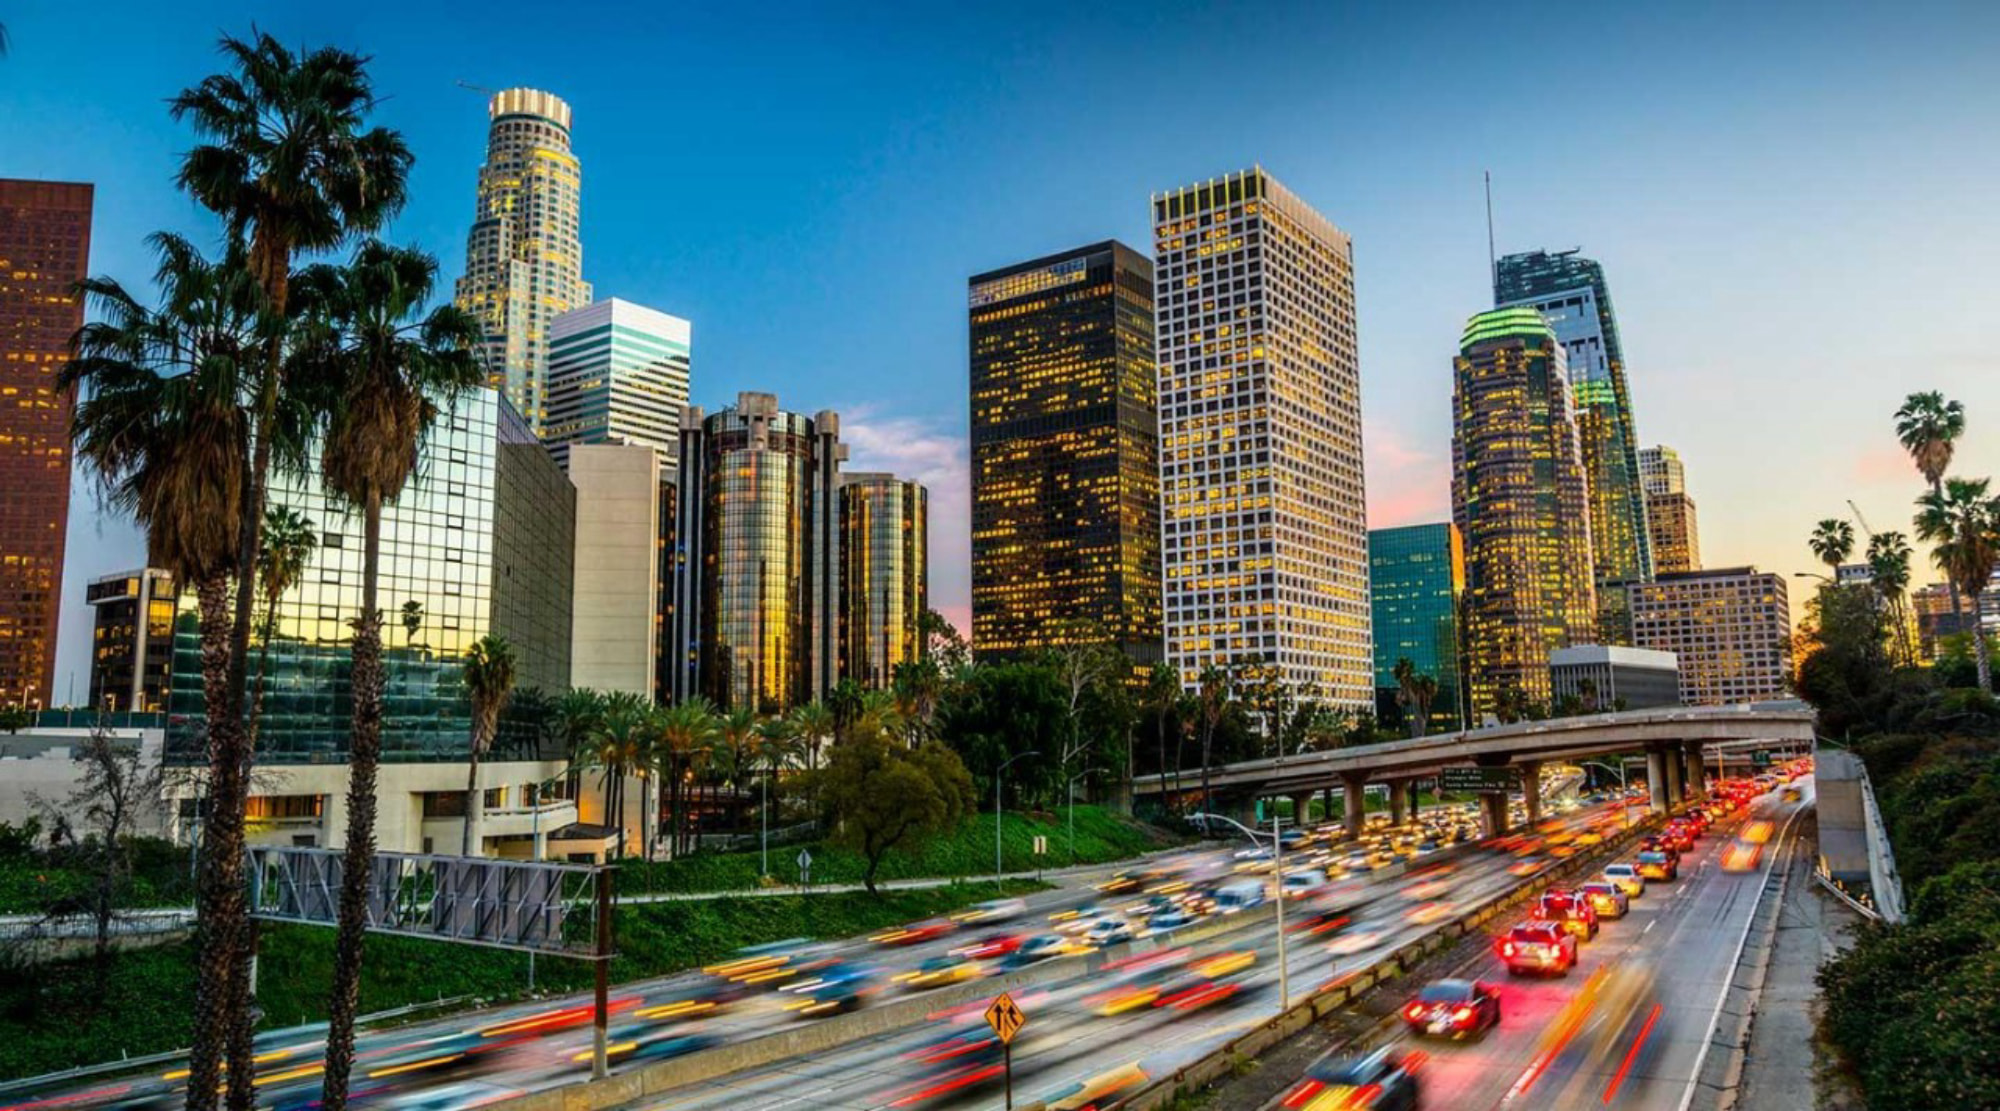 Getting to Los Angeles, United States